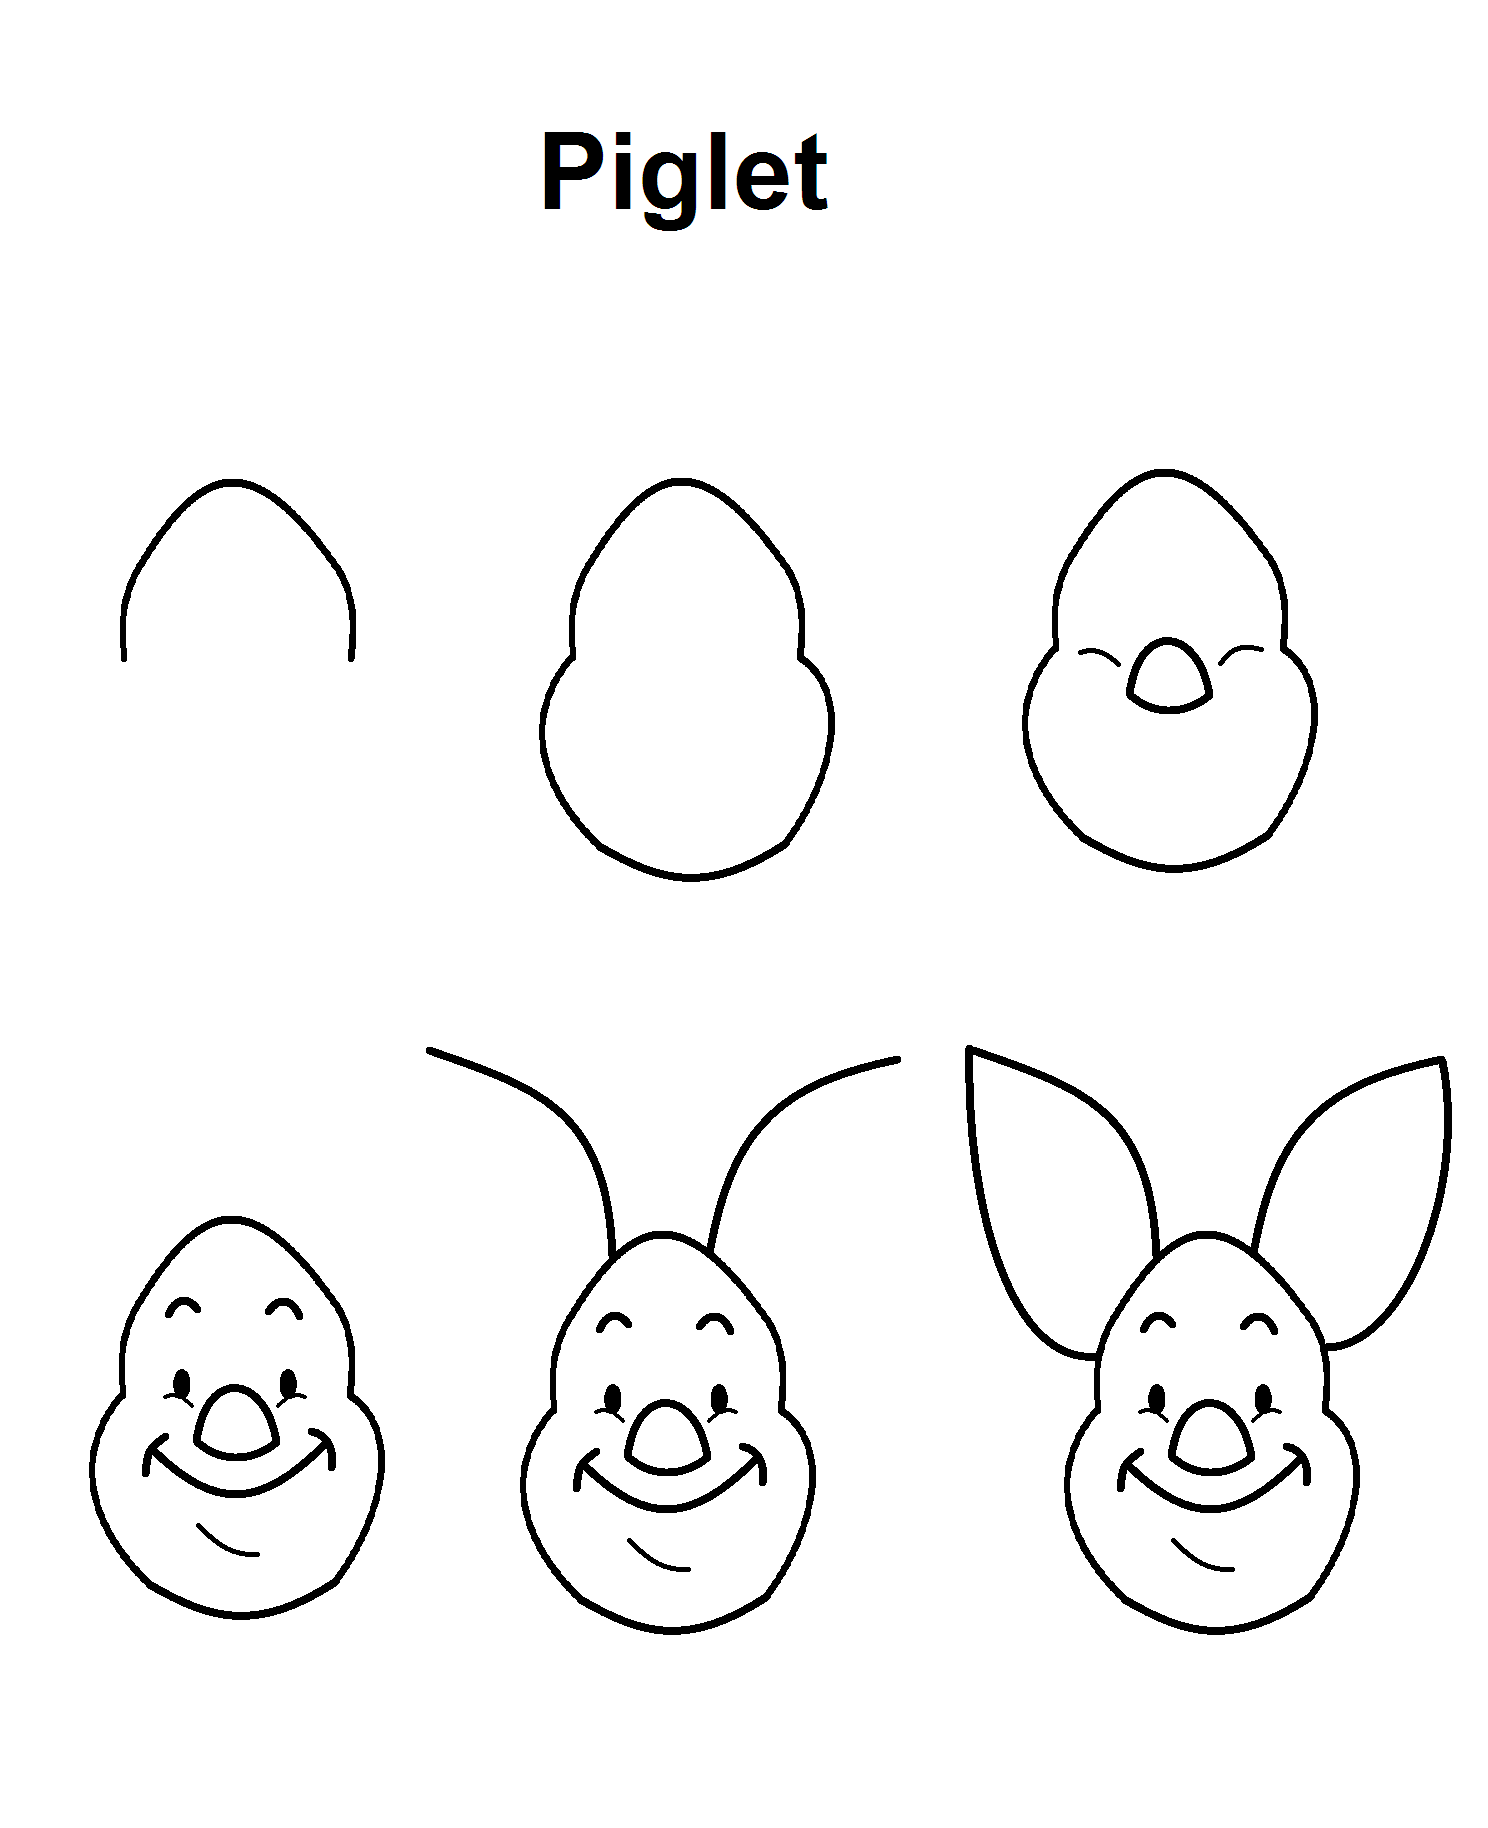 easy steps to draw disney characters how to draw snow white disneyjpg 7001230 pixels disney characters easy to draw steps